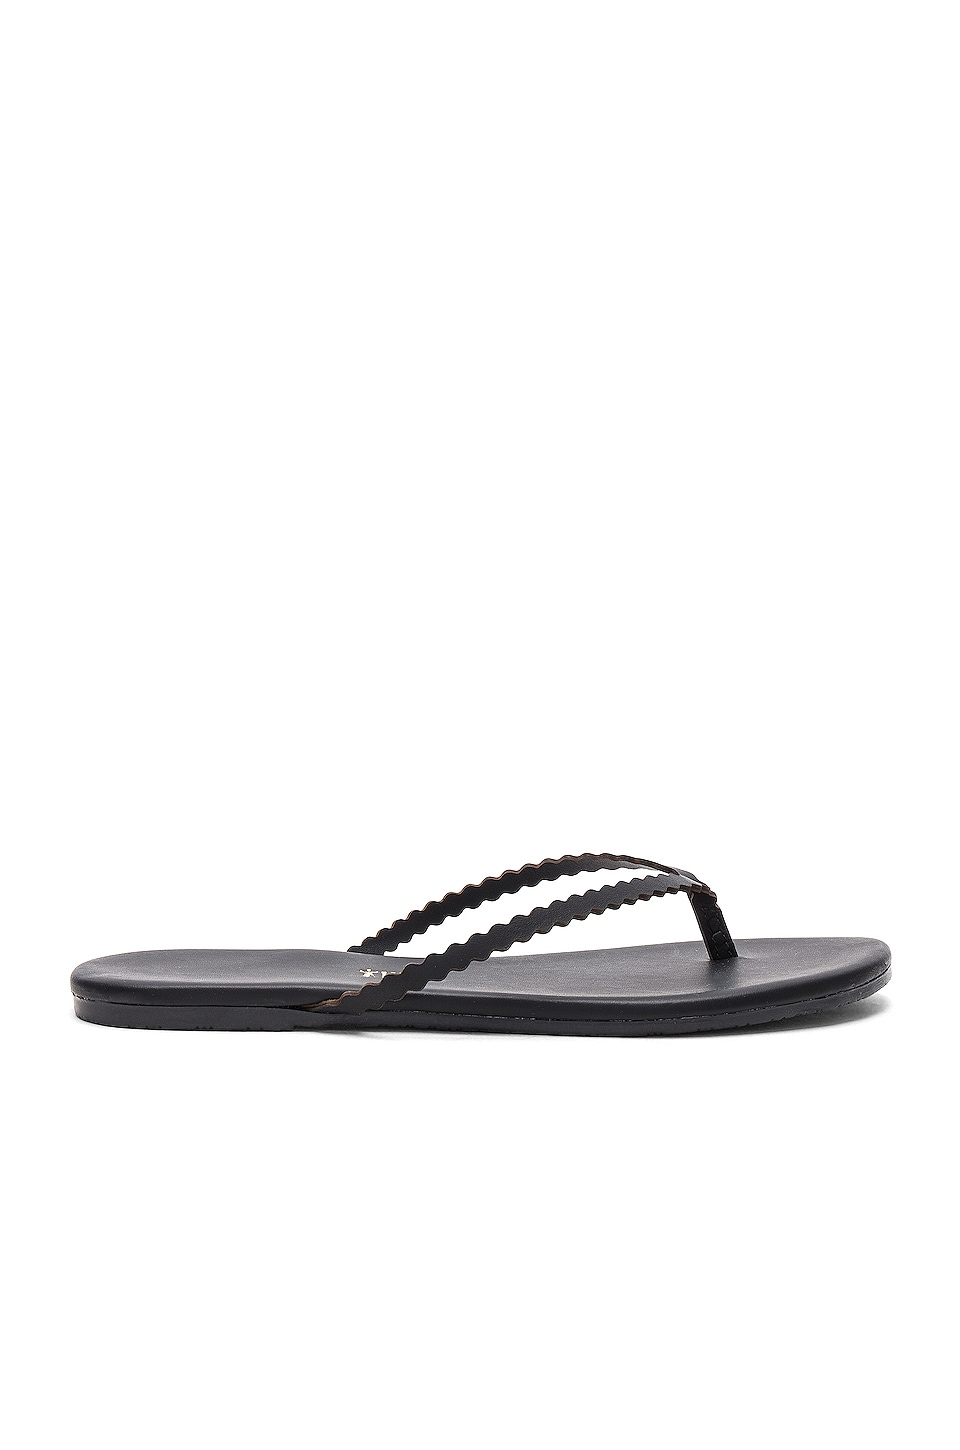 TKEES Studio Sandal in Sabine